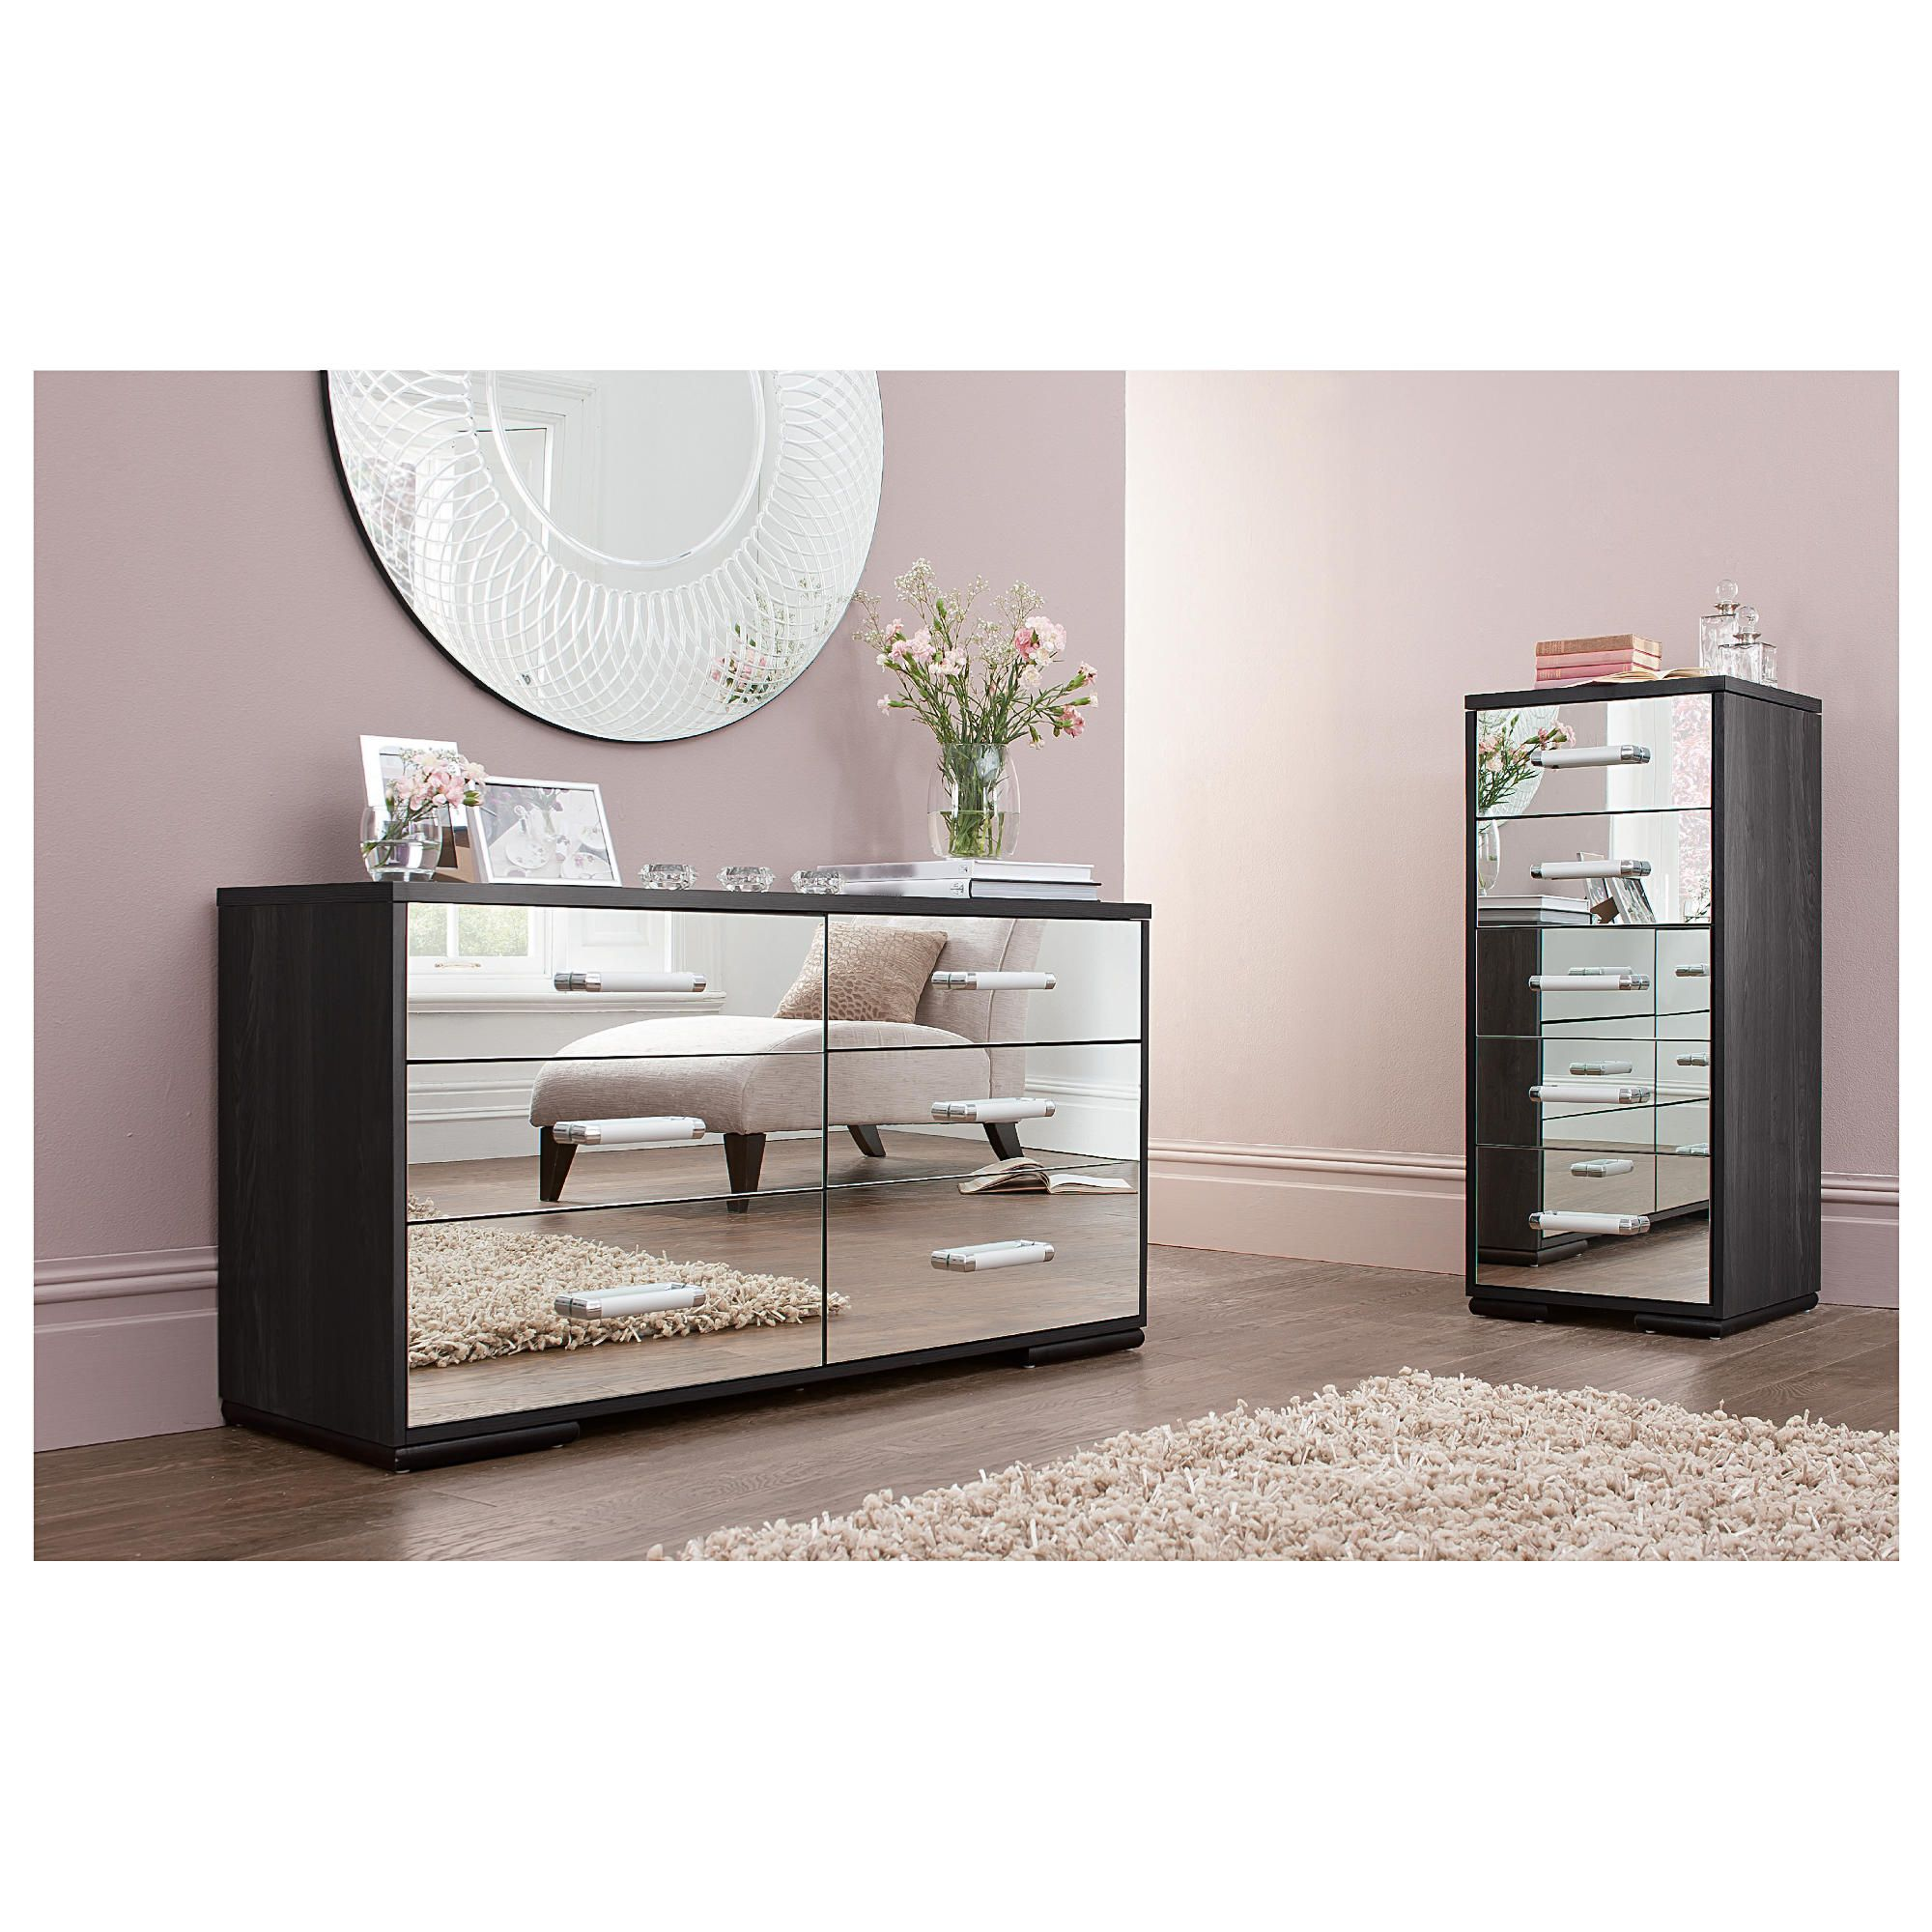 Sophia Tall & 6 Drw Wide Chest Set Mirrored at Tesco Direct